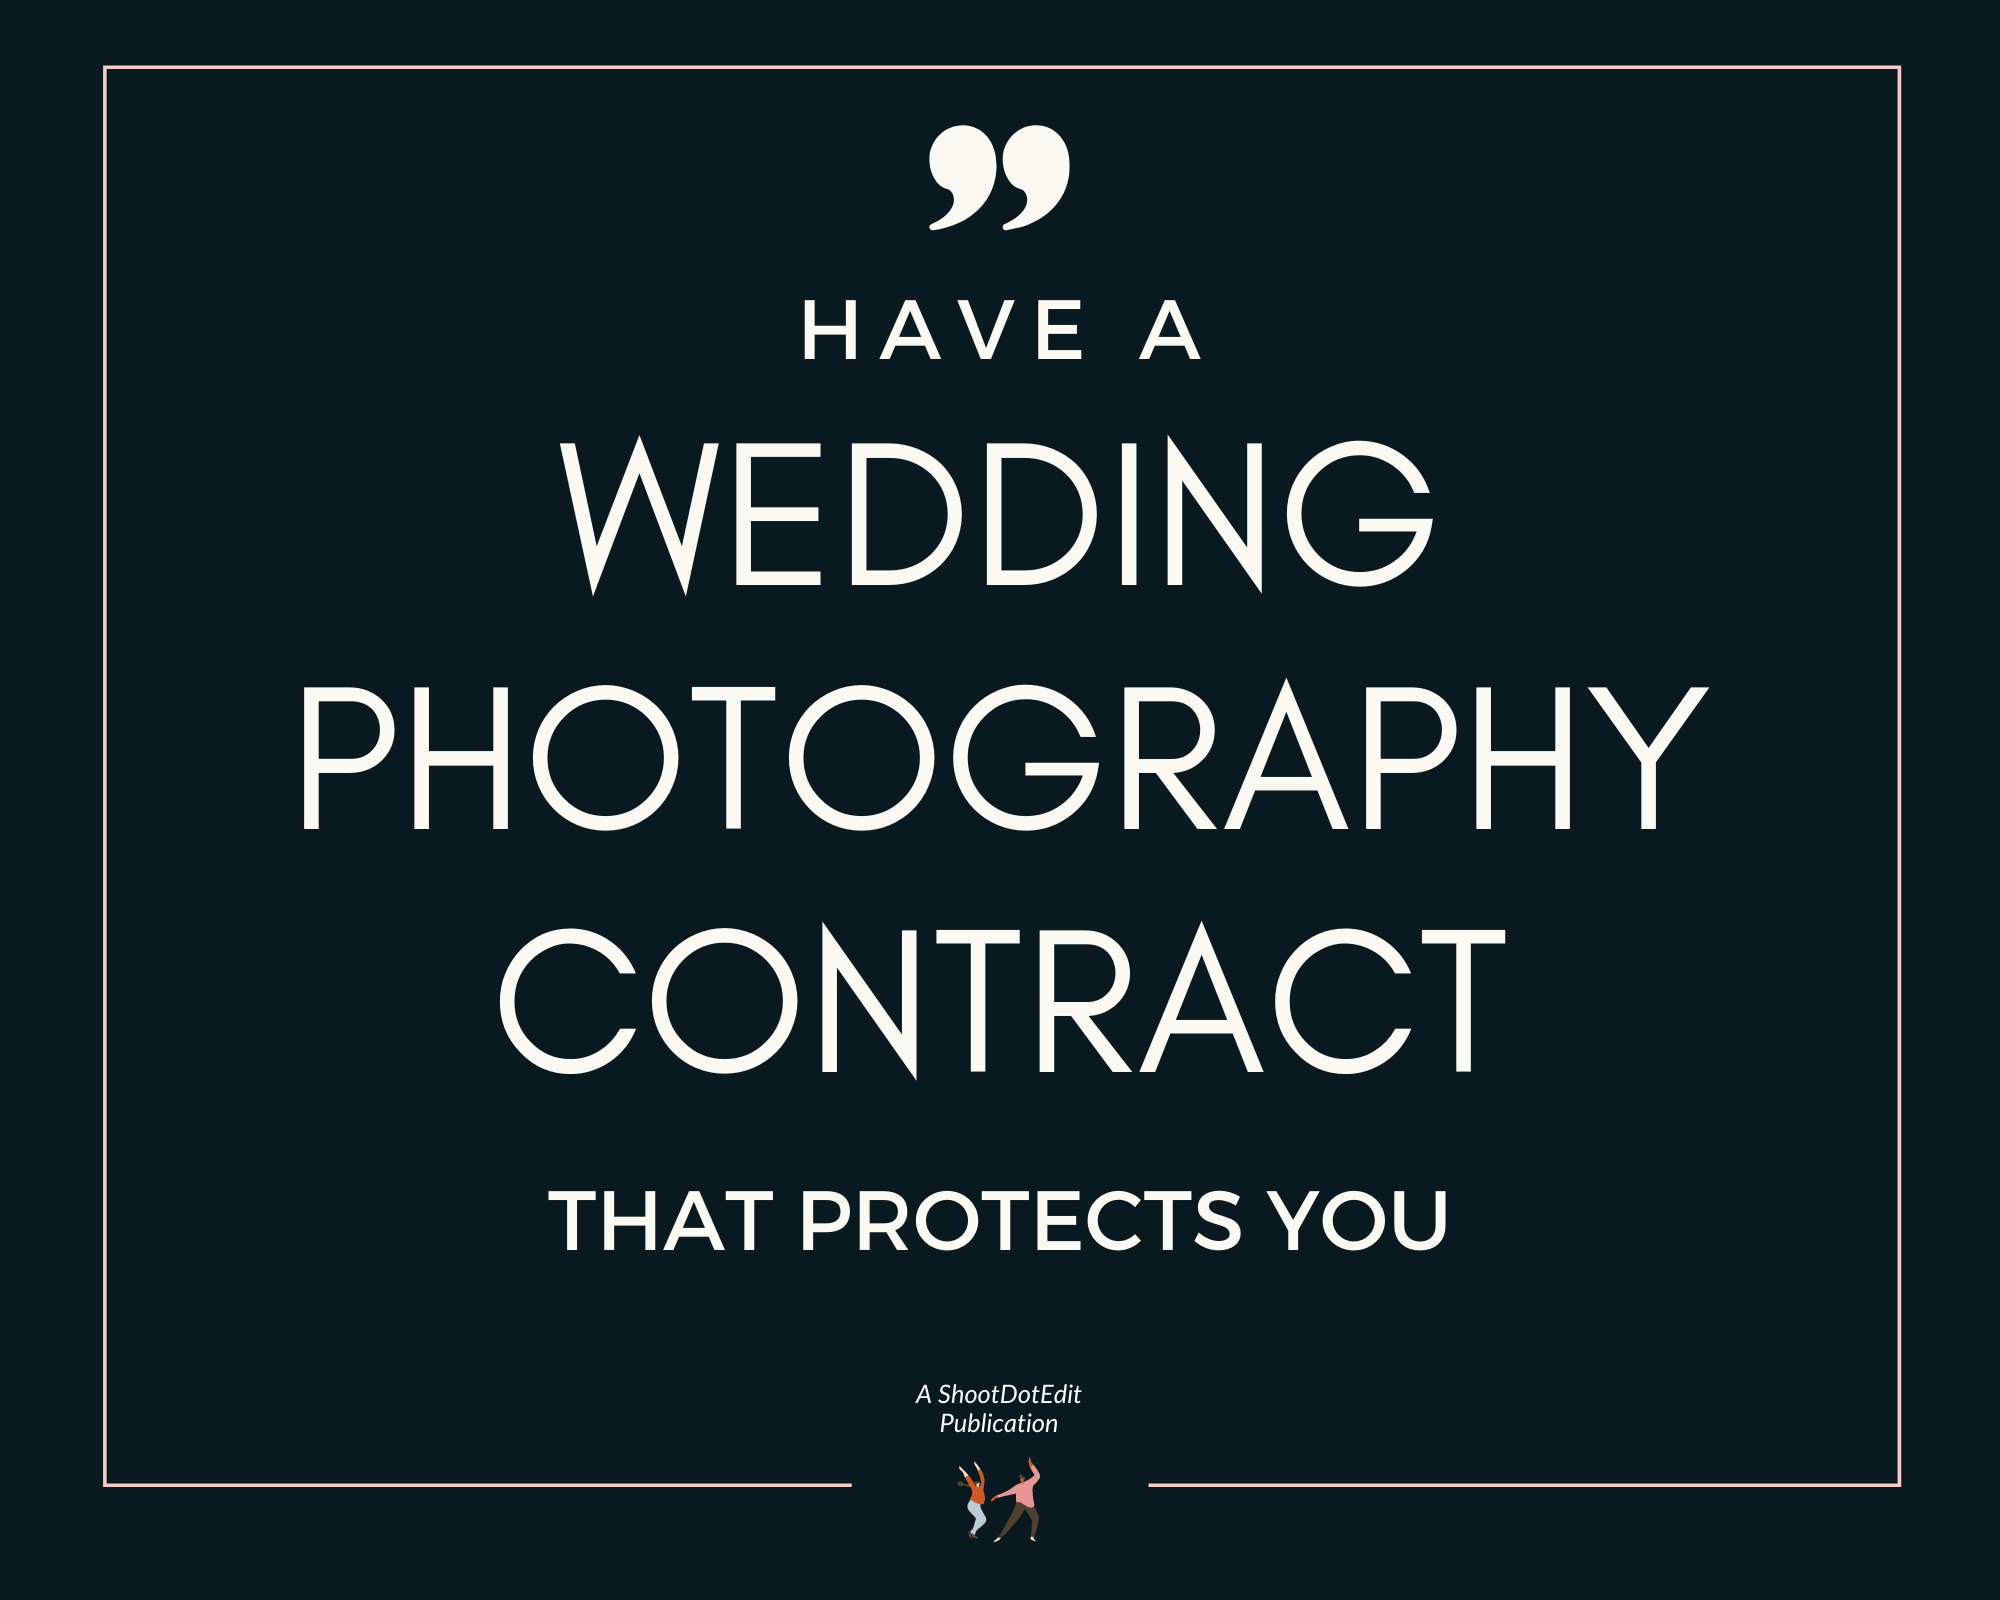 Graphic displaying - Have a wedding photography contract that protects you